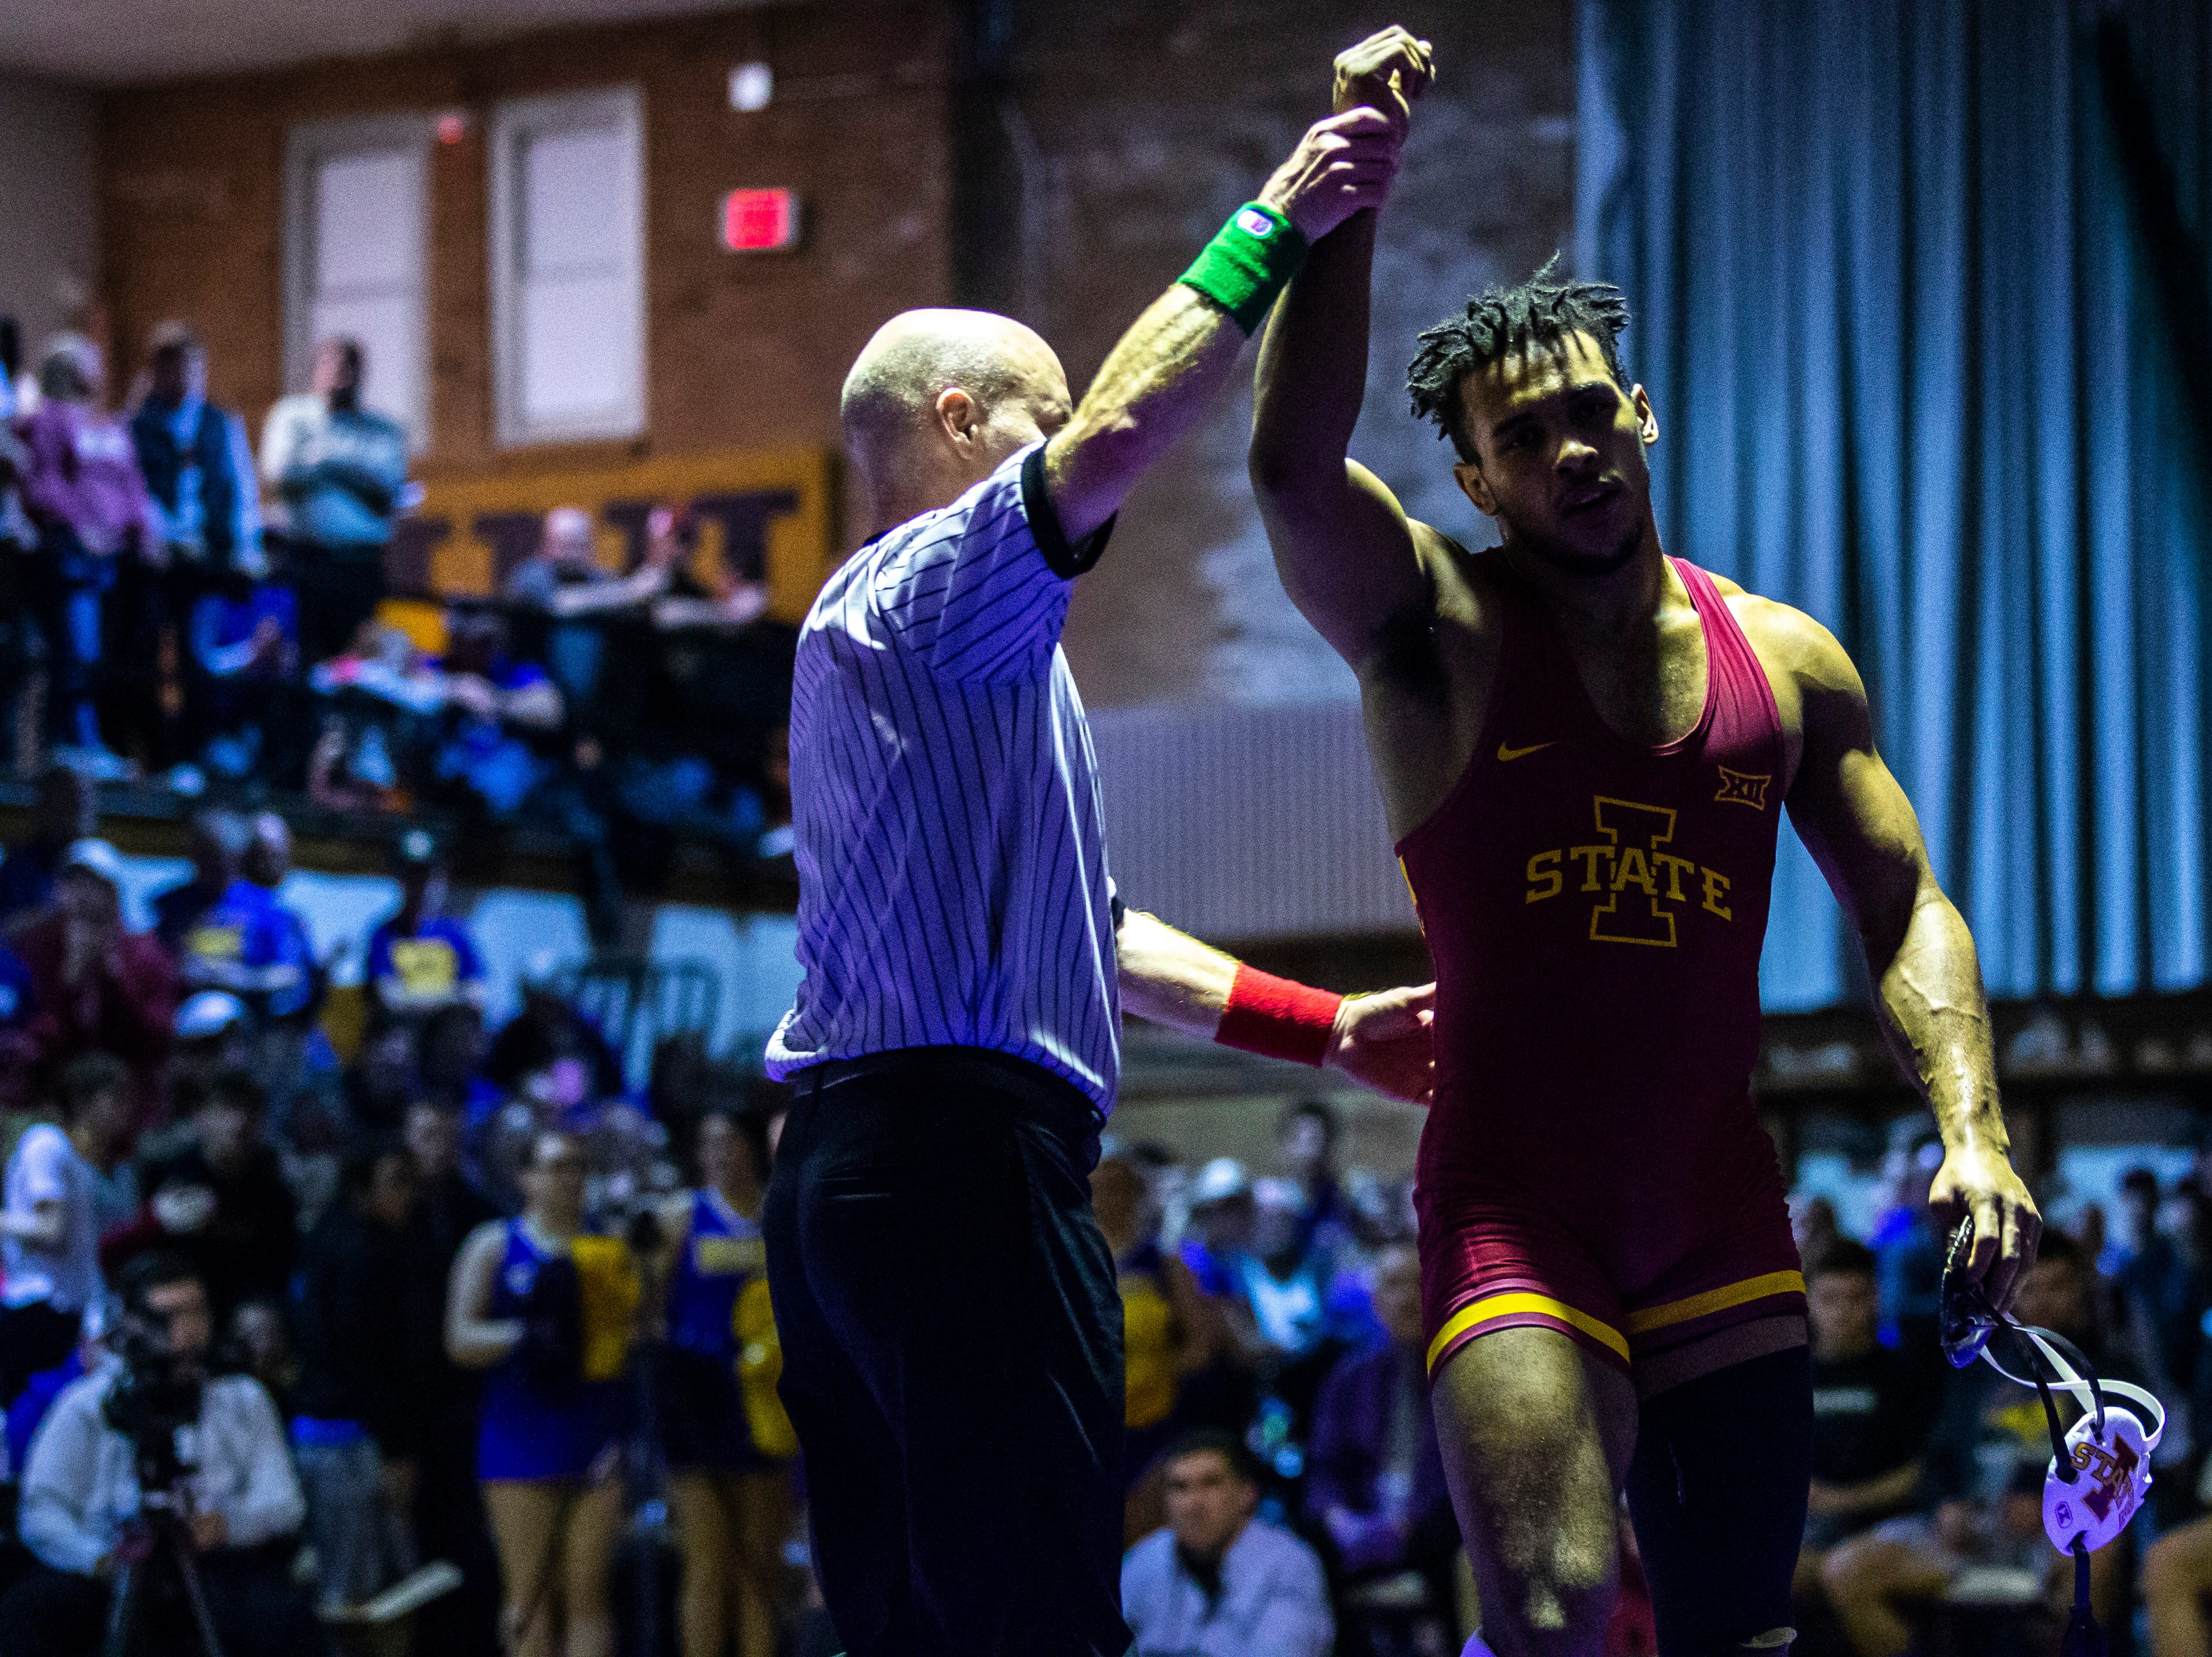 Iowa State's Sam Colbray has his hand raised after scoring a decision over Northern Iowa's Drew Foster at 184 during a NCAA Big 12 wrestling dual on Thursday, Feb. 21, 2019 at the West Gymnasium in Cedar Falls, Iowa.